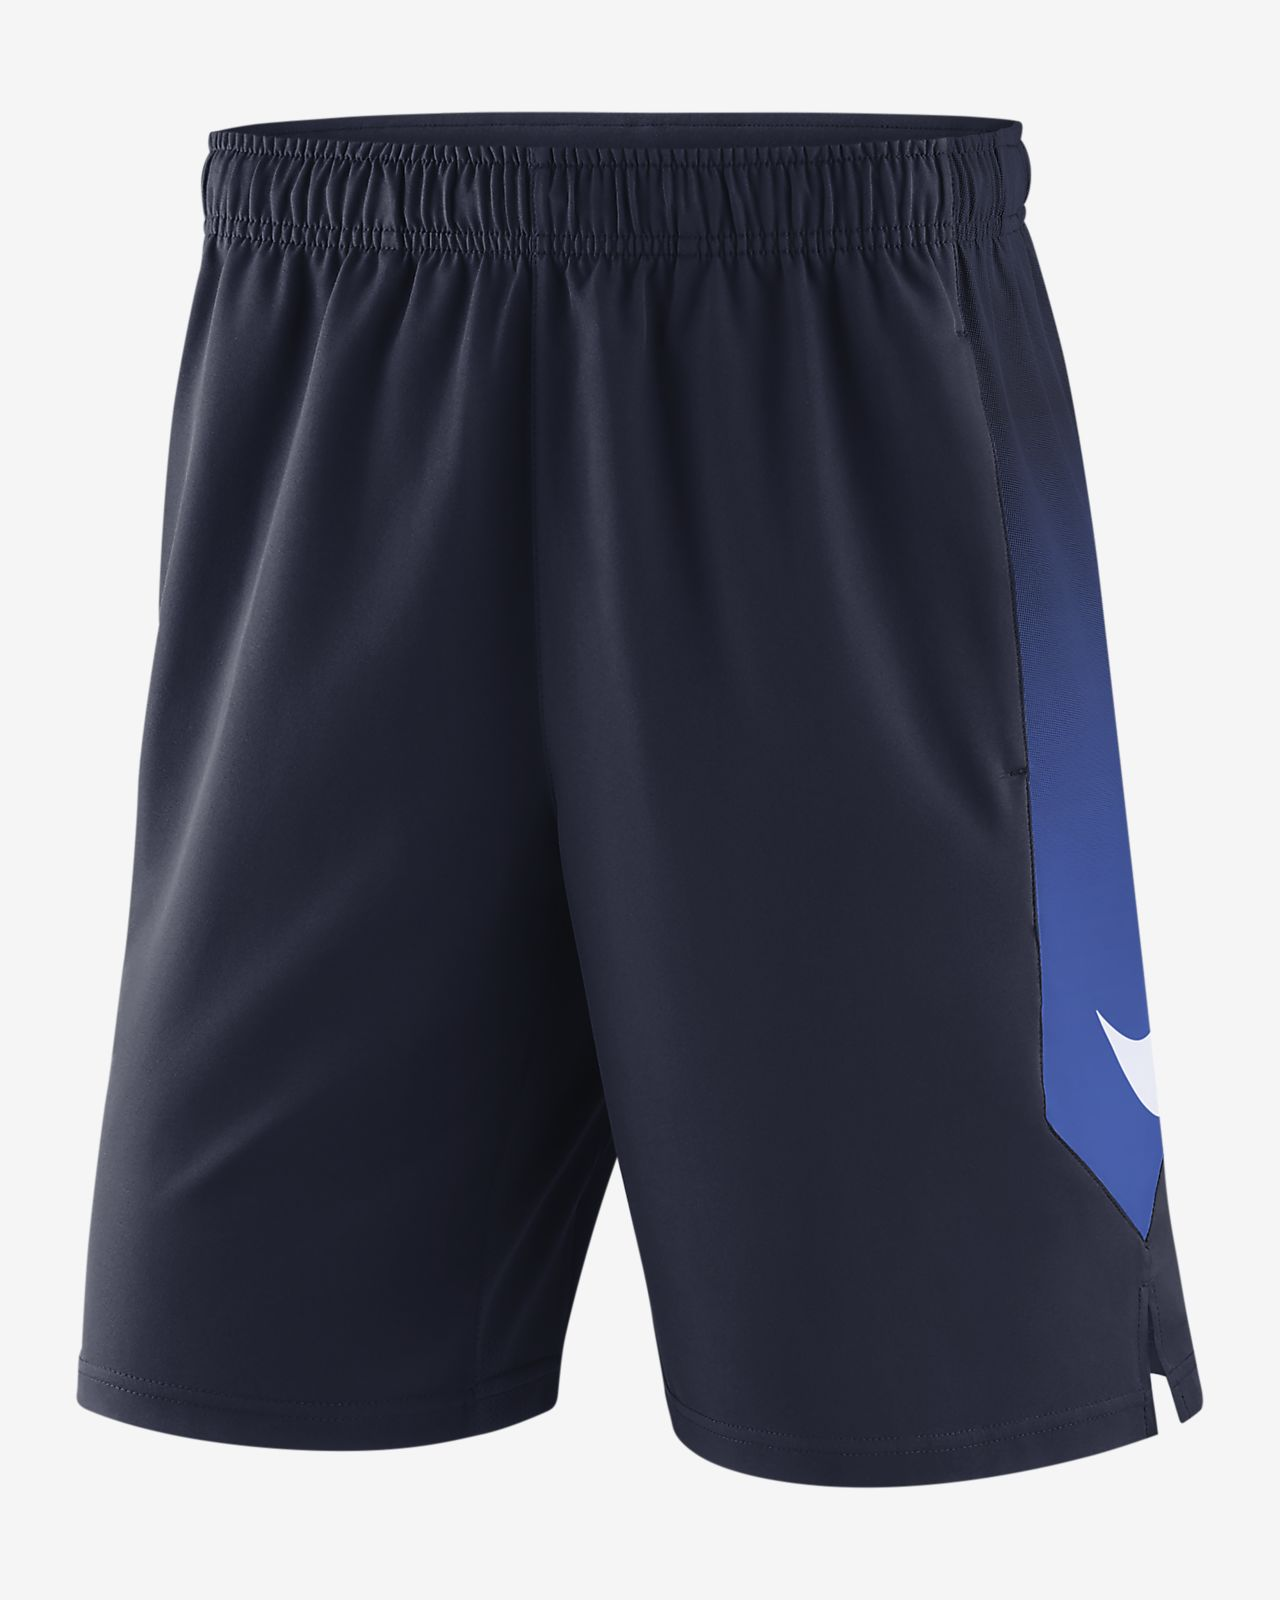 Nike Dri-FIT (MLB Astros) Men's Shorts